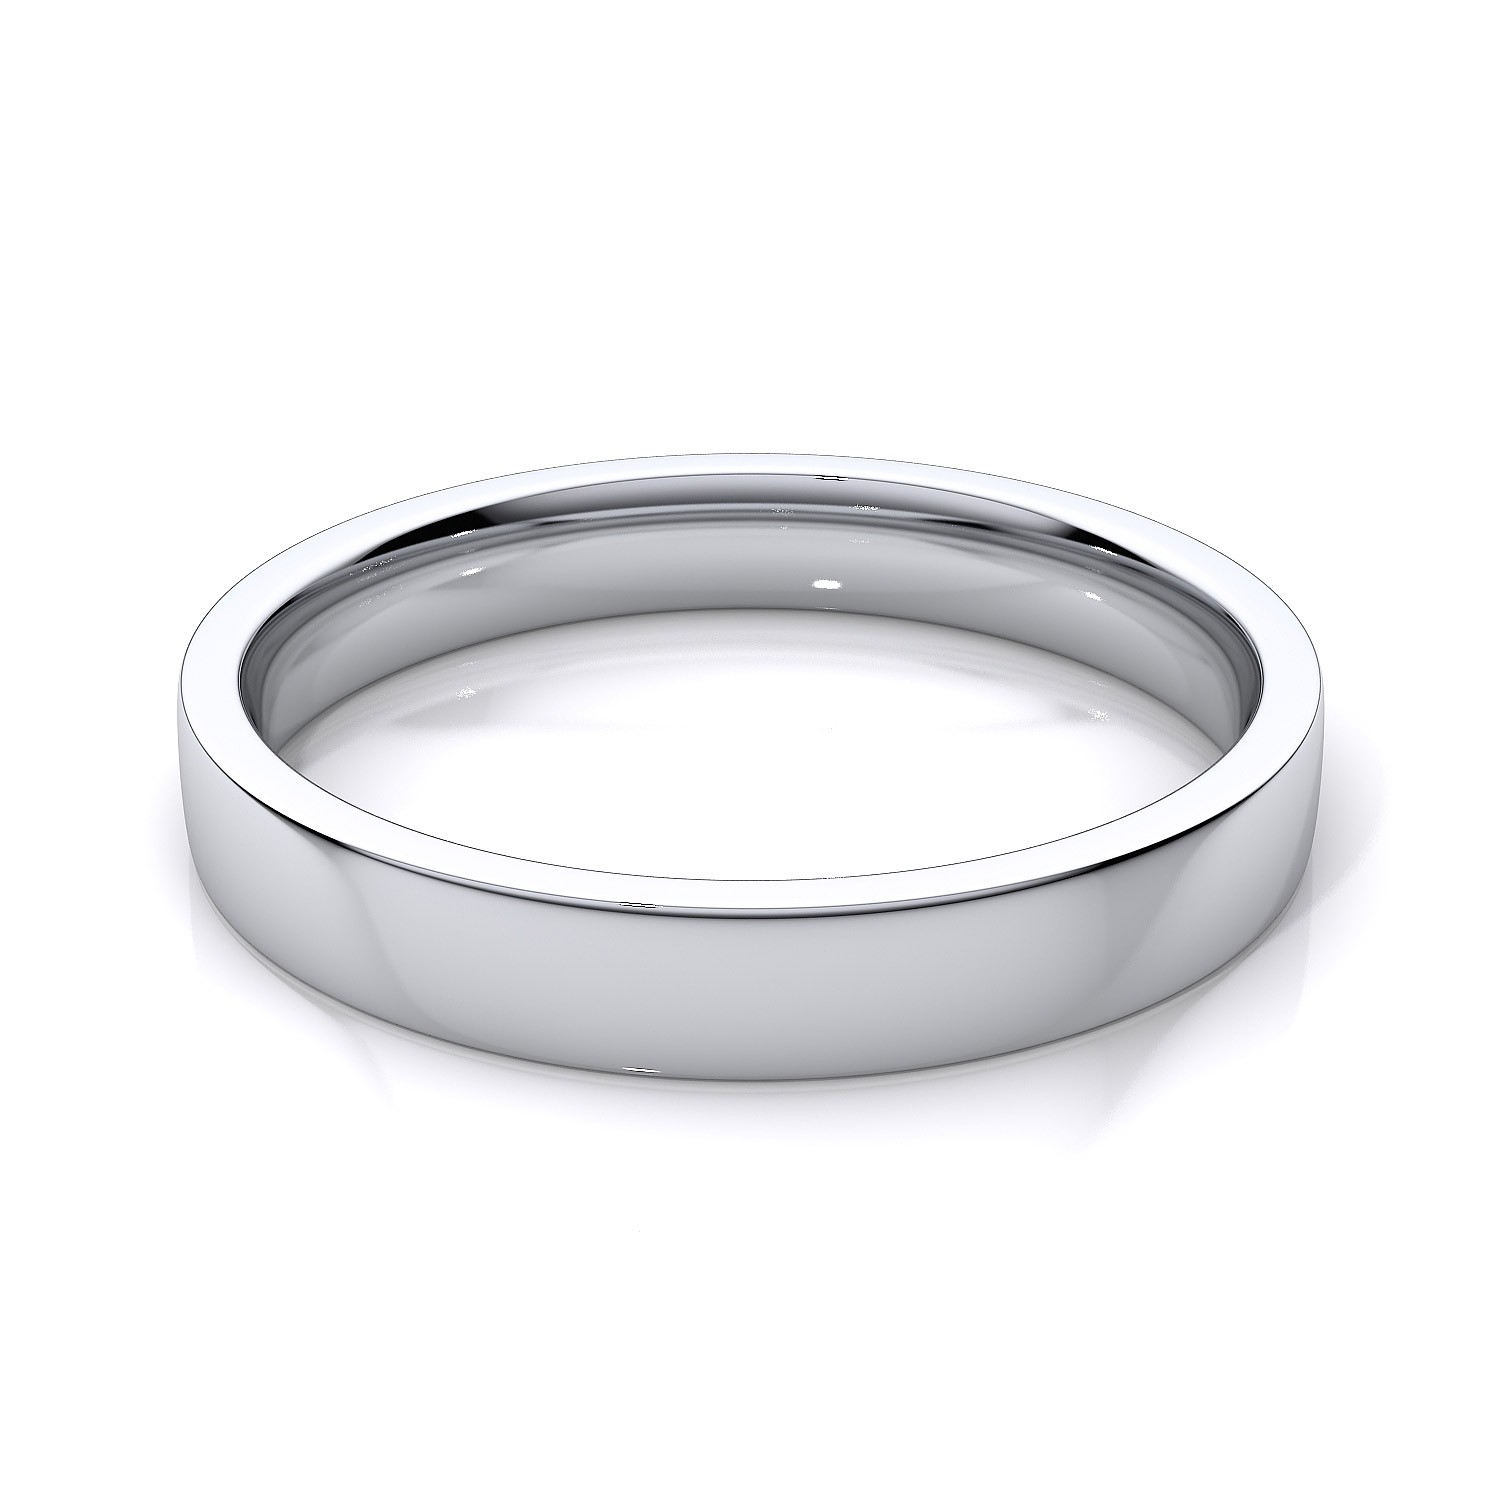 collections band with wedding bands classic per thin yellow gold style mikacustomdesign plain